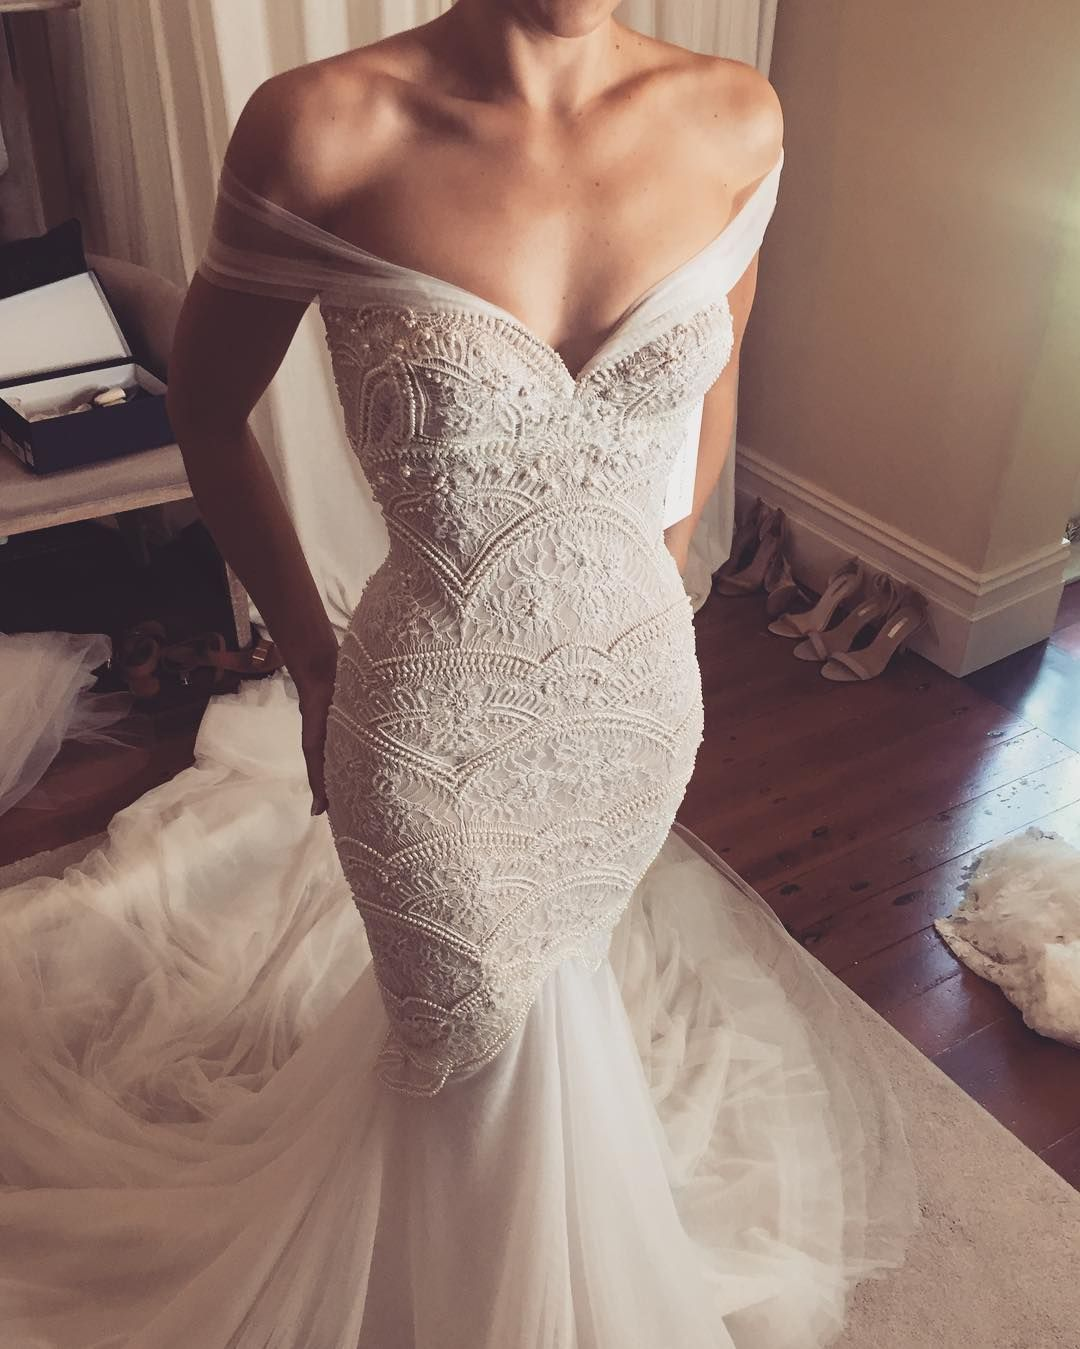 Final fitting leahdagloria dresses inspirations pinterest